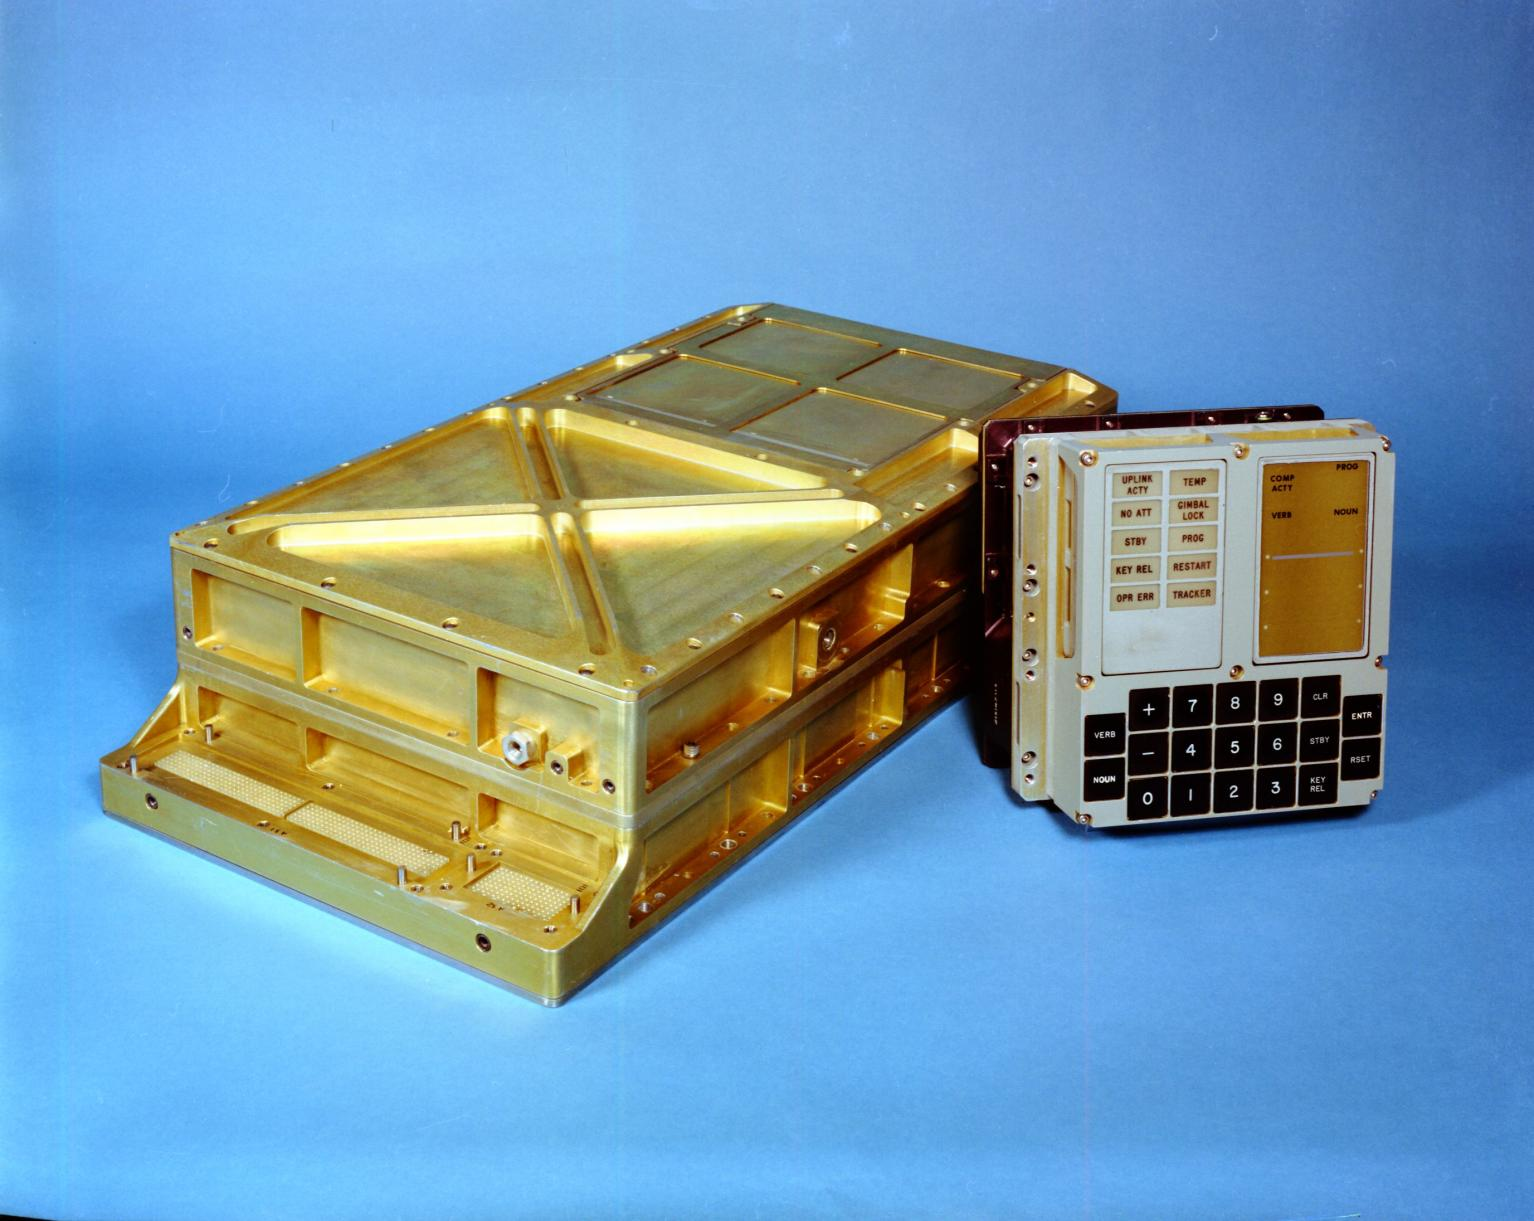 Apollo Guidance Computer and DSKY (Display Keyboard)